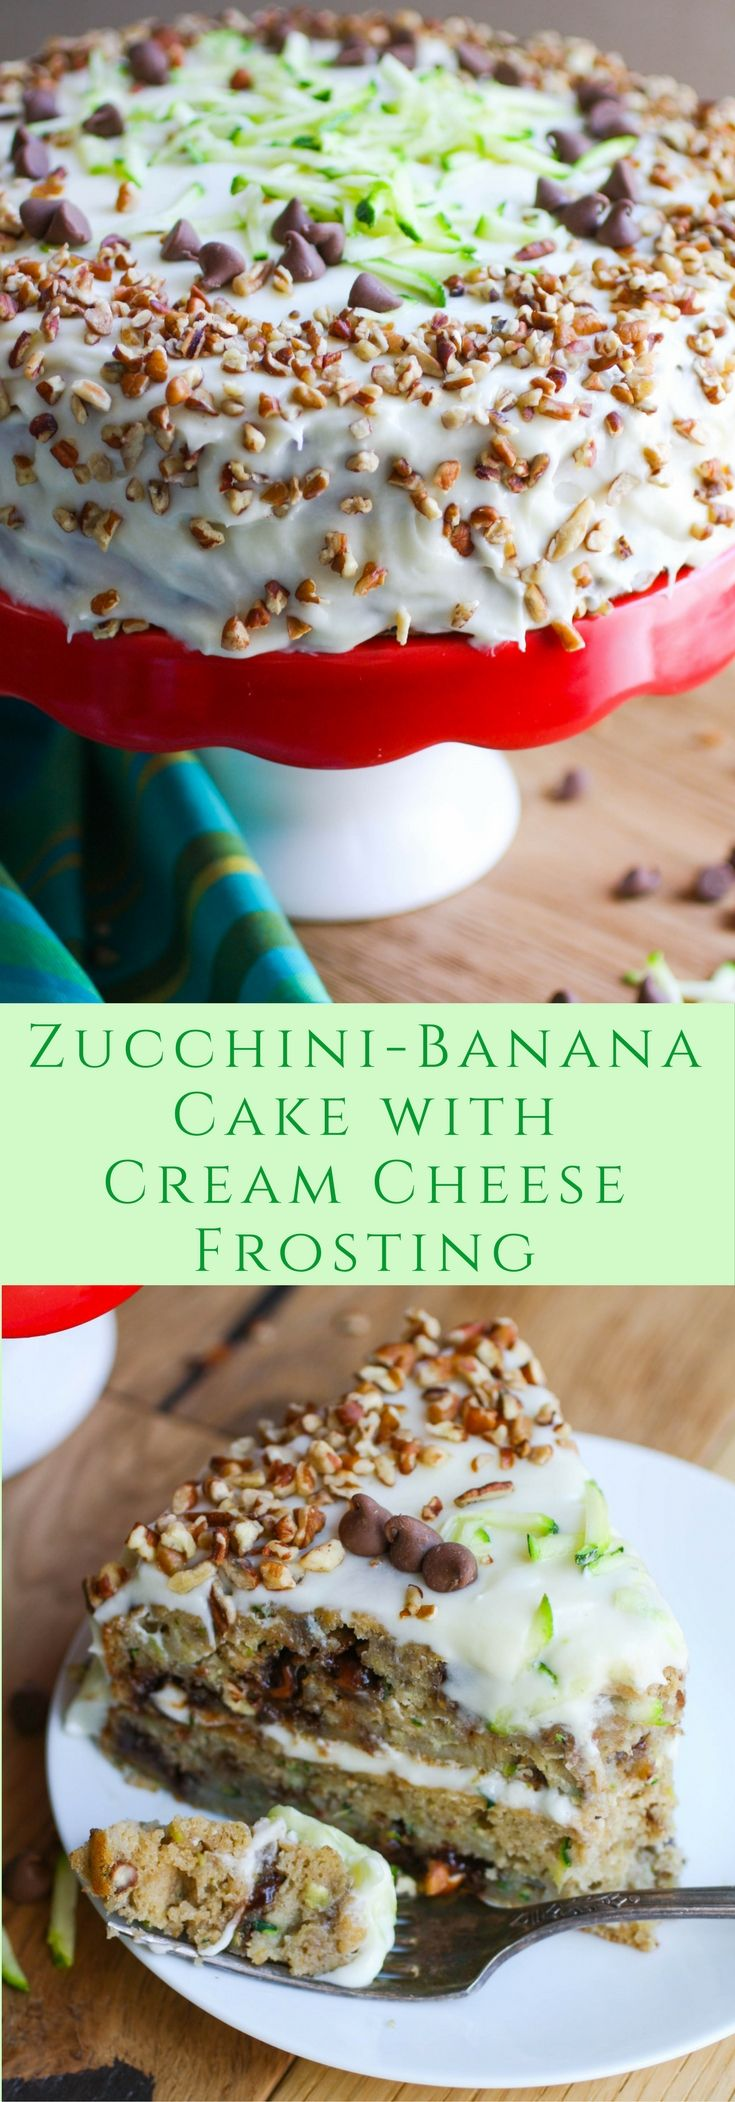 Zucchini-Banana Cake with Cream Cheese Frosting makes a wonderful dessert for any special occasion! This dessert is super moist!